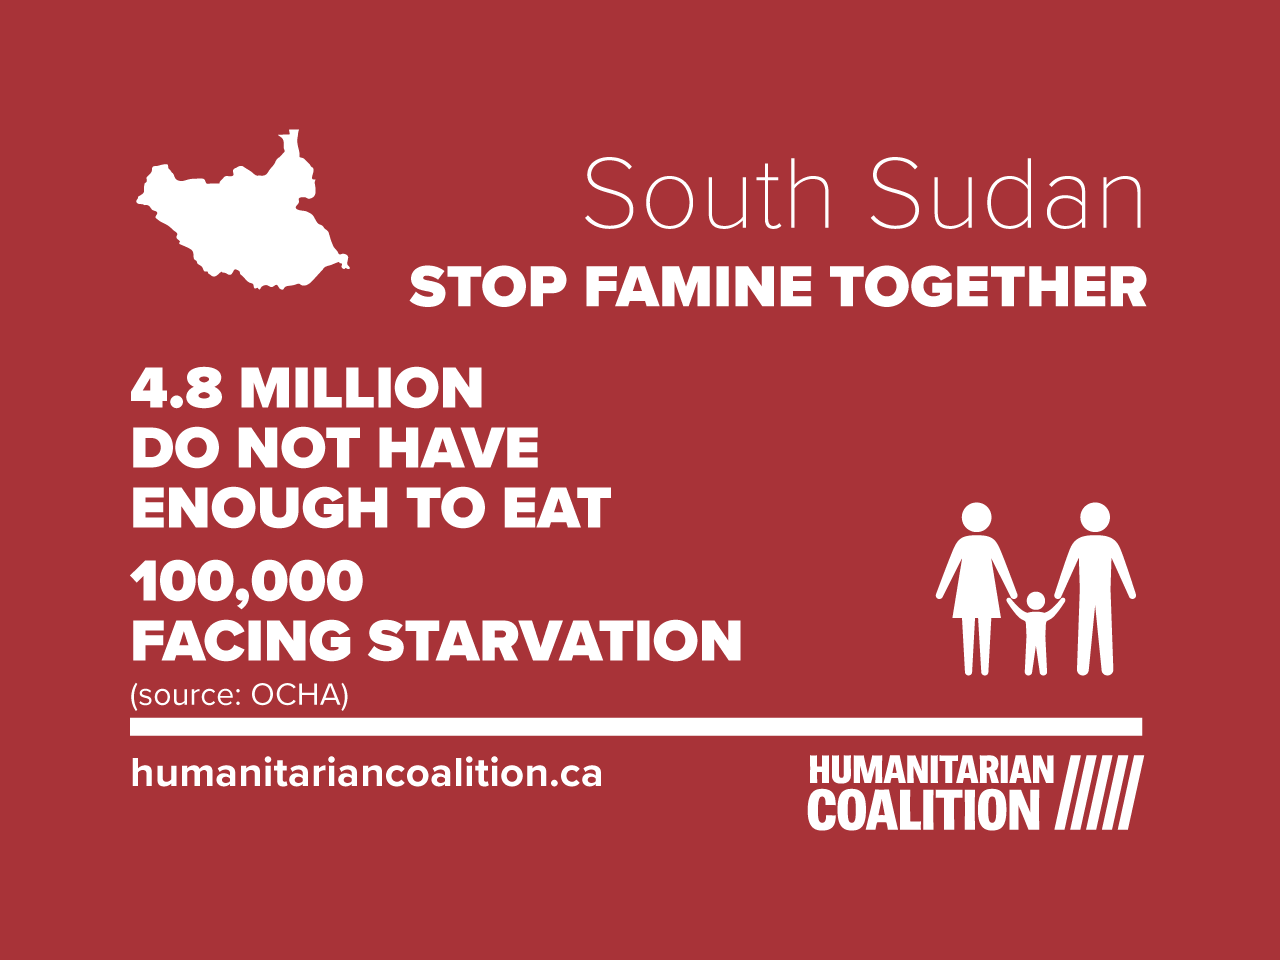 food crisis in South Sudan infographic